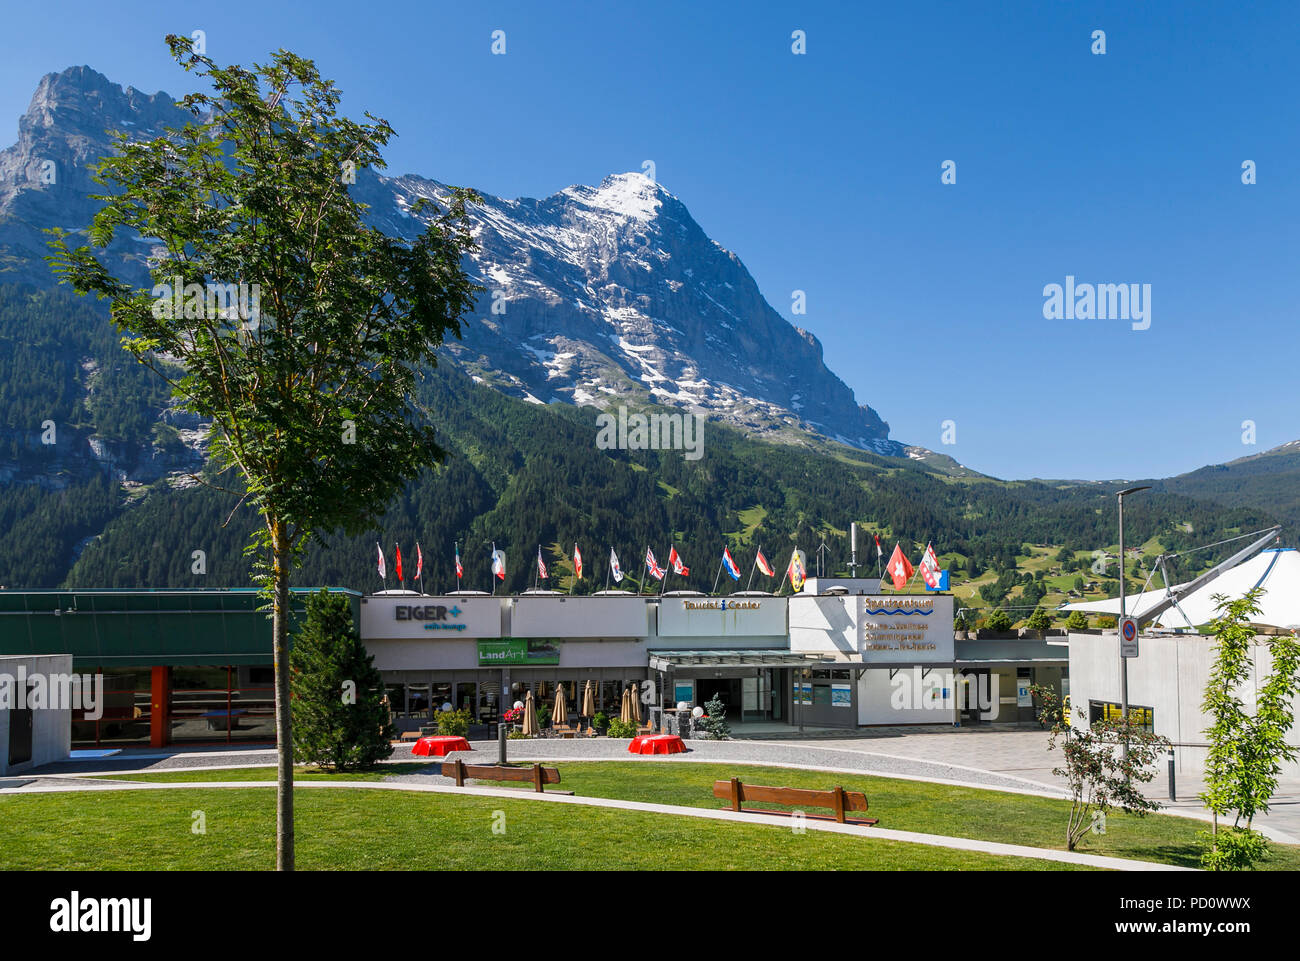 The Sportzentrum (sports centre) and Tourist Infomation Center in Grindelwald, the Eiger mountain in the background, Bernese Oblerland, Switzerland - Stock Image